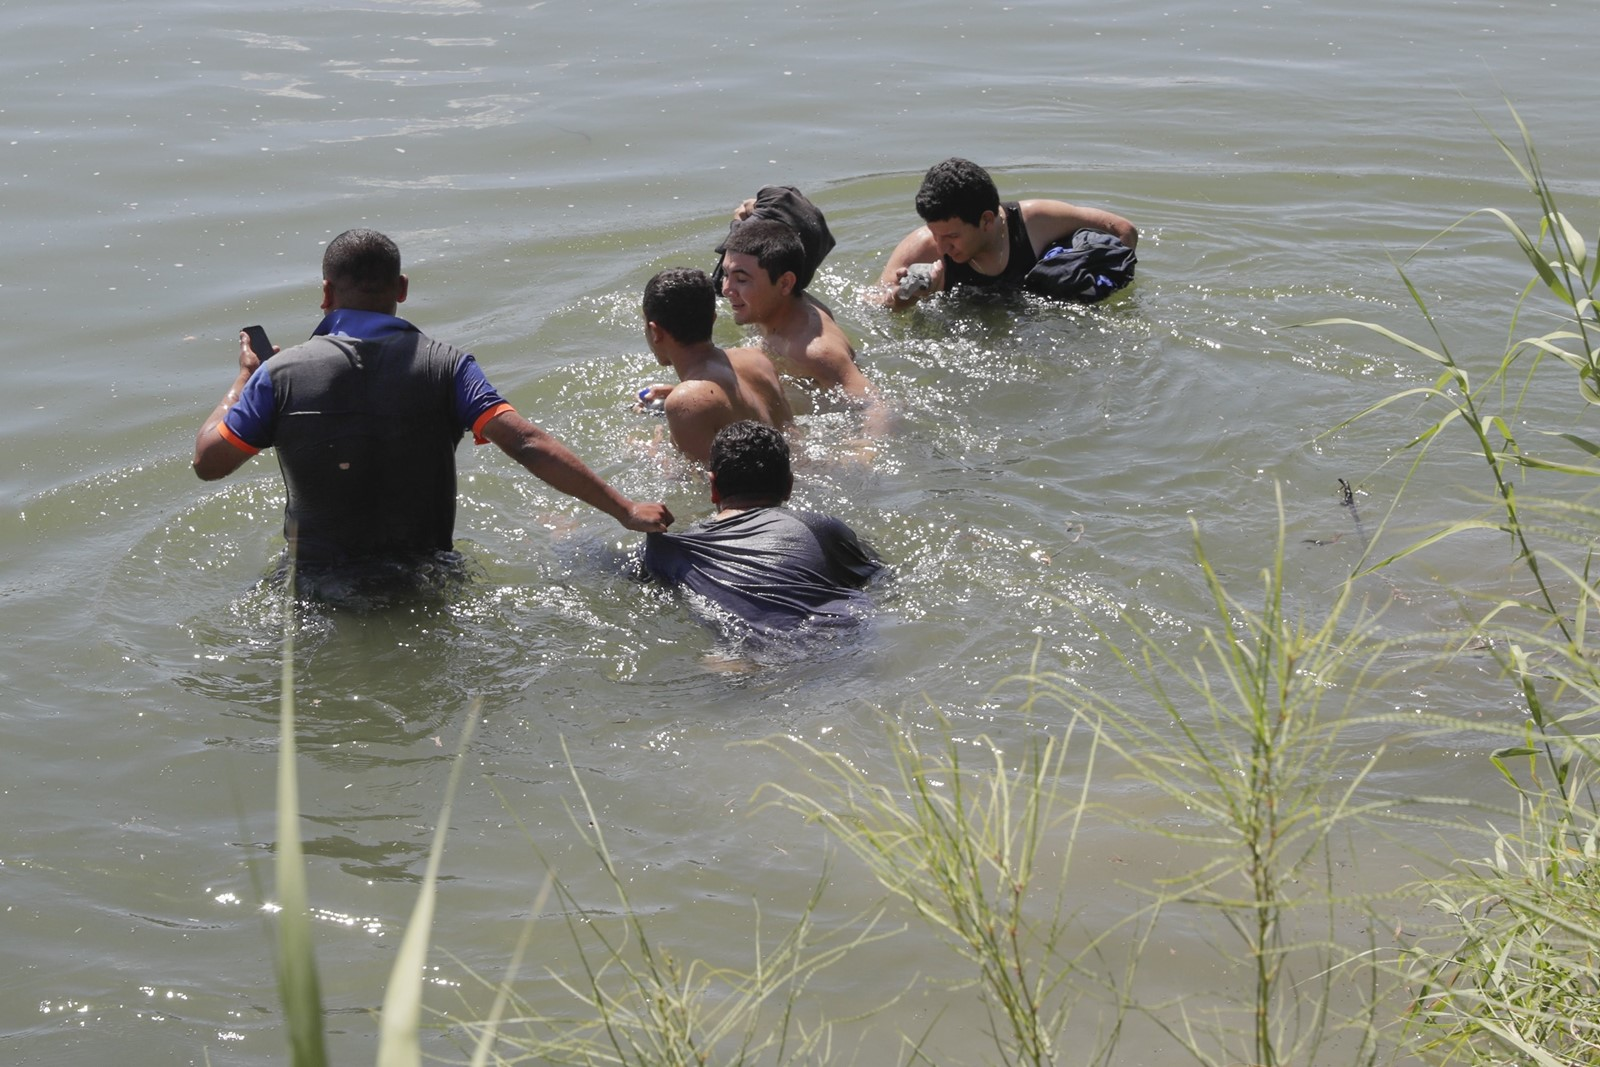 A smuggler leads migrants away from the Rio Grande riverbank on the U.S. side. They were fleeing from agents who found them hiding in reeds. — Photograph: Robert Gauthier/Los Angeles Times.